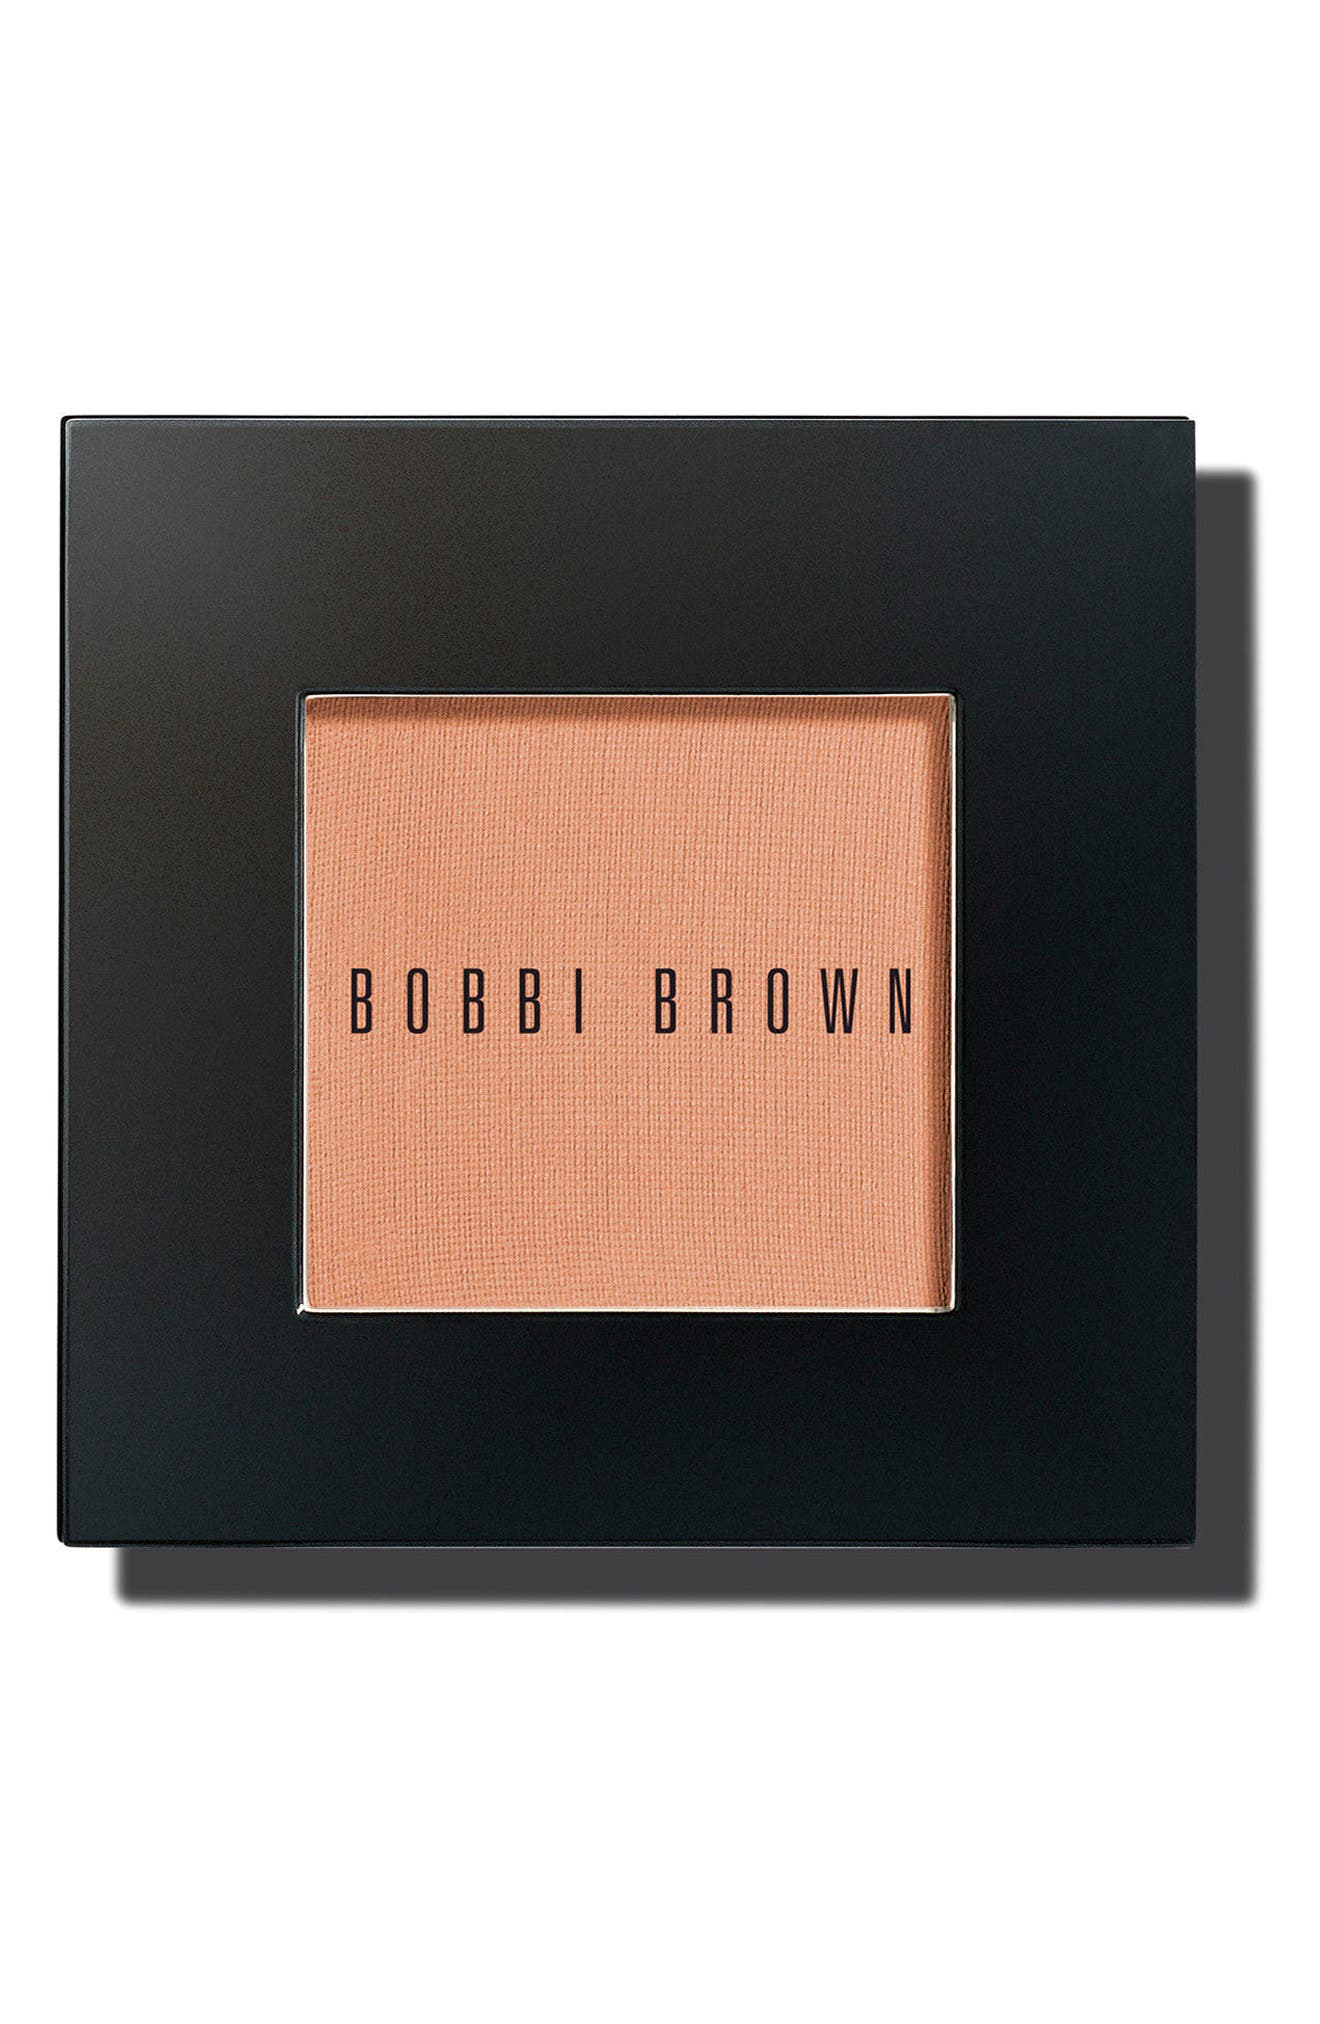 What it is: A silky, powder eyeshadow that glides on smoothly, blends easily and delivers a soft matte finish. Why it\\\'s different: The densely pigmented formula keeps its color and can be layered for greater shade intensity. It\\\'s available in a wide range of shades for coloring lids, lining eyes and defining brows. How to use: Depending on the shade, the eyeshadow can be used all over the lid, on the lower lid, in the crease or as a